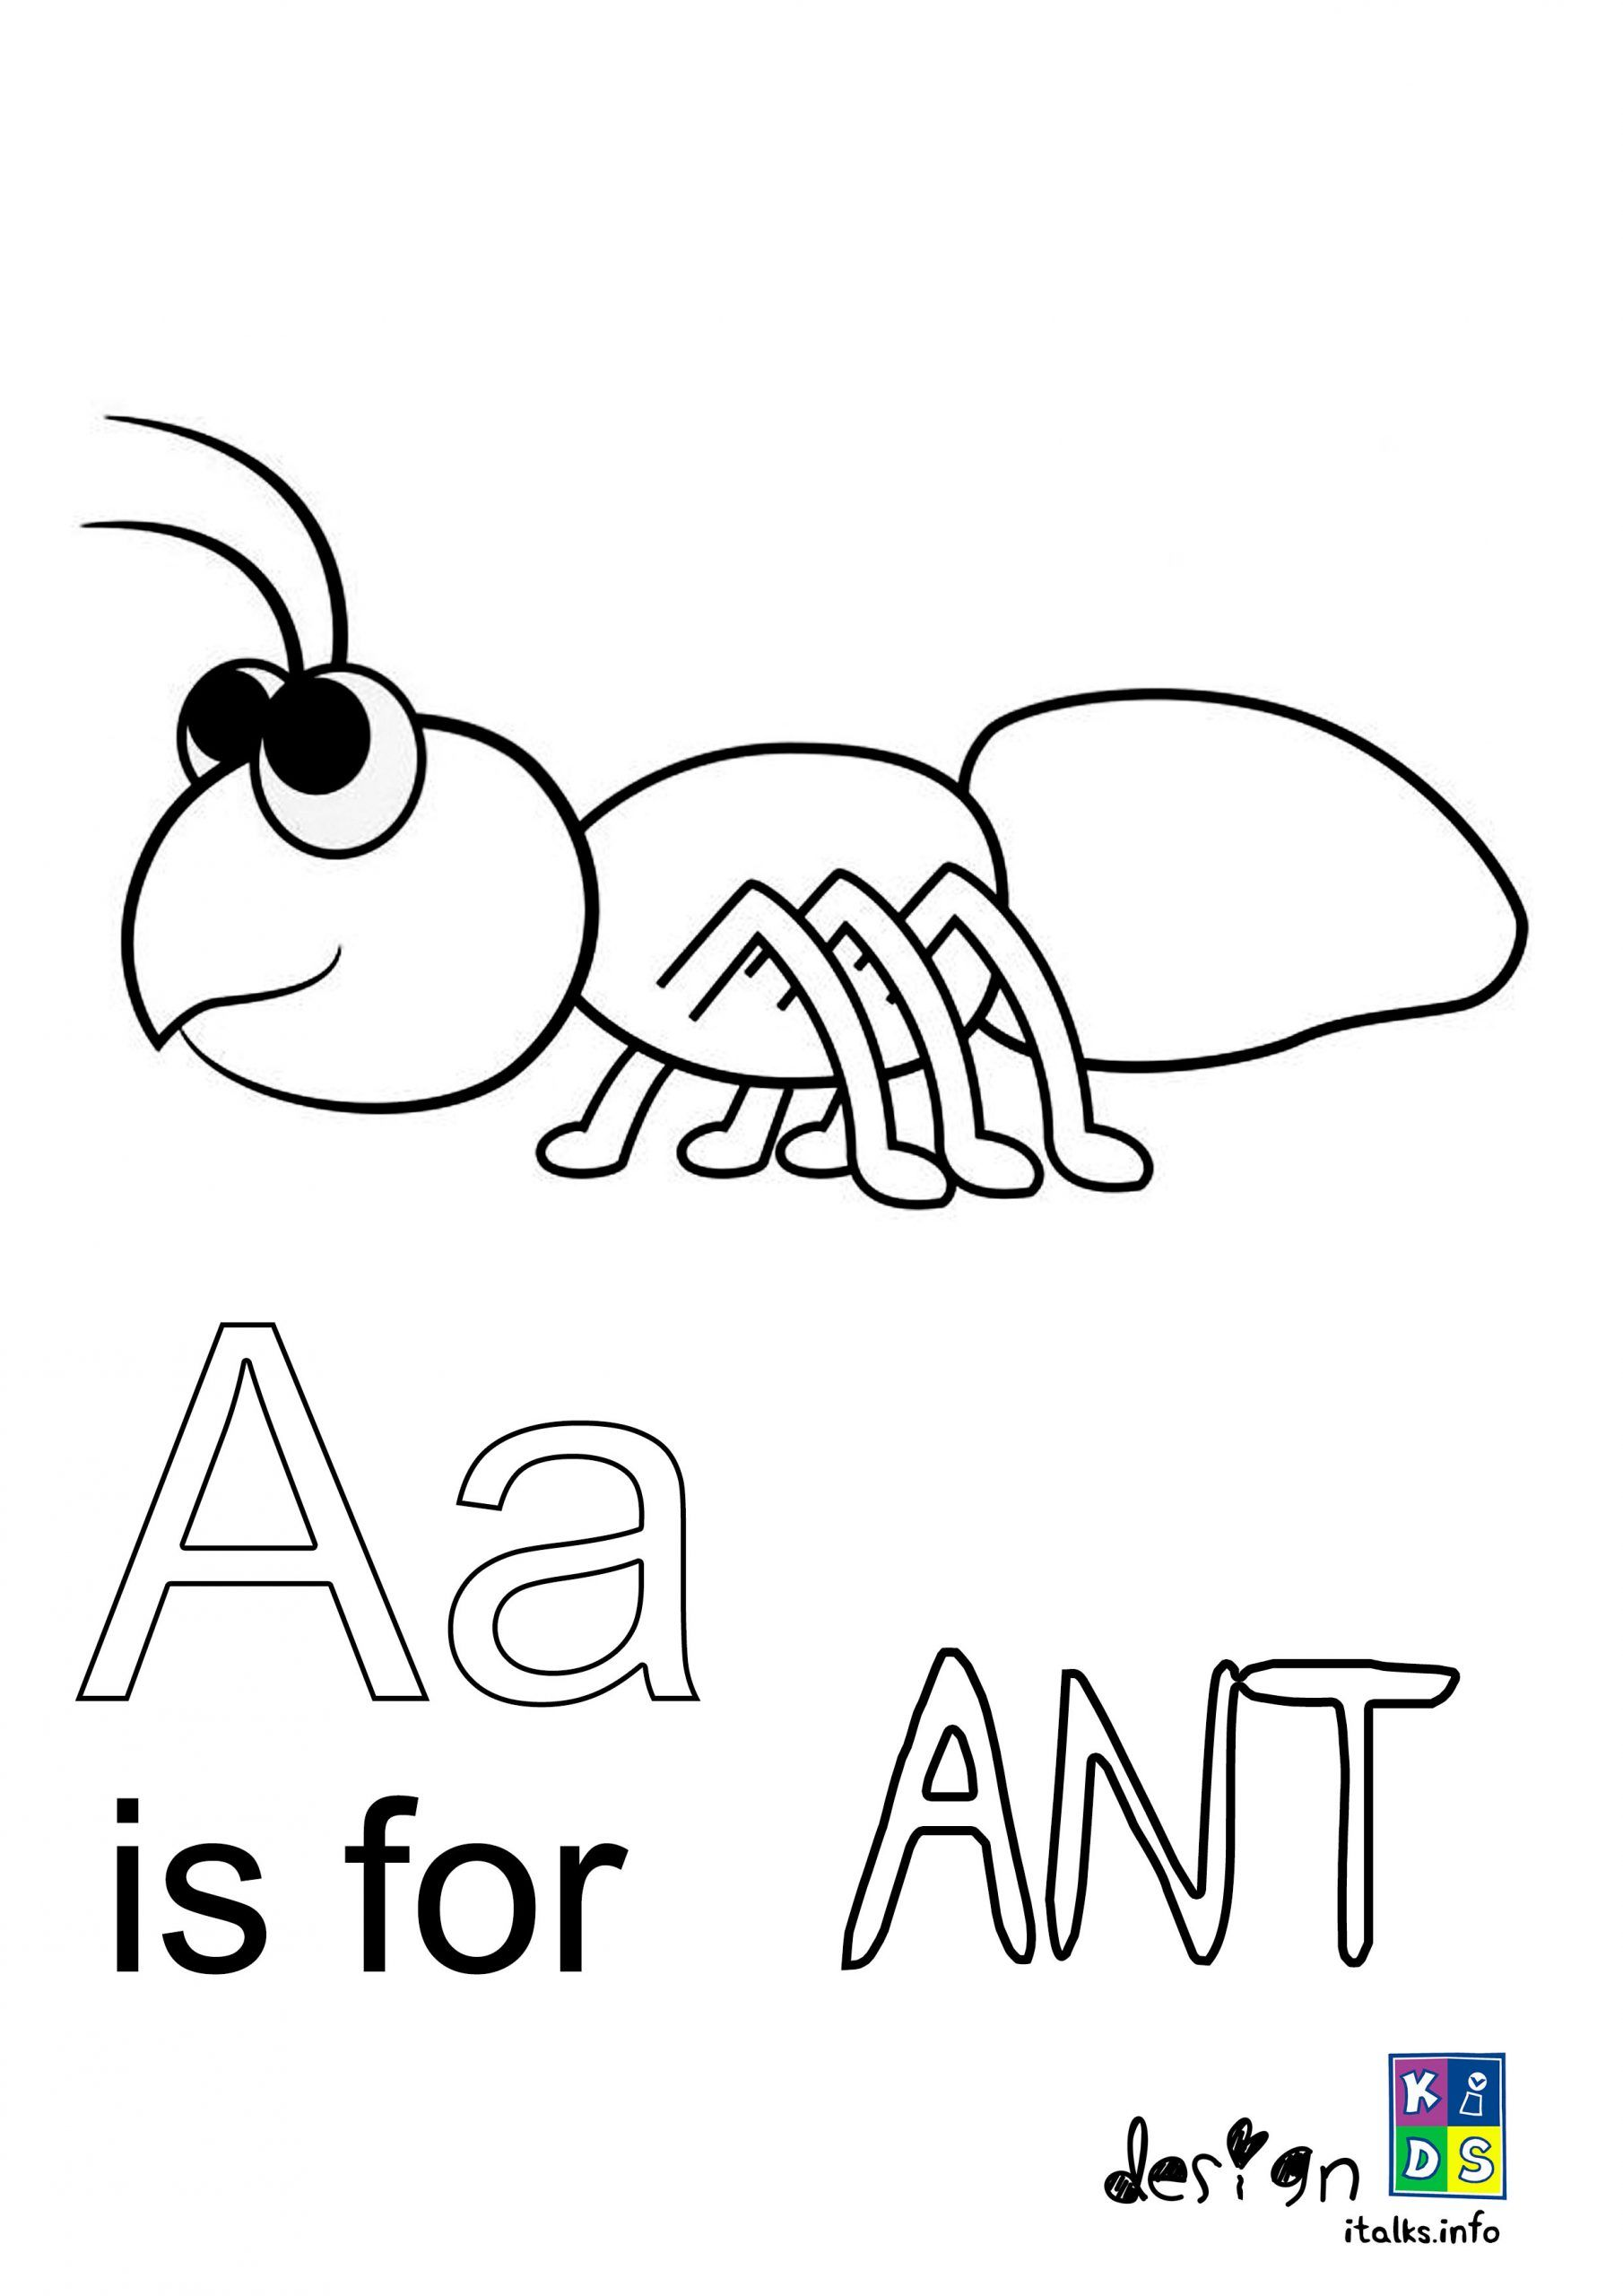 Pin By Designg Coloring On Coloring Pages For Kids Alphabet Coloring Pages Alphabet Coloring Coloring Pages For Kids